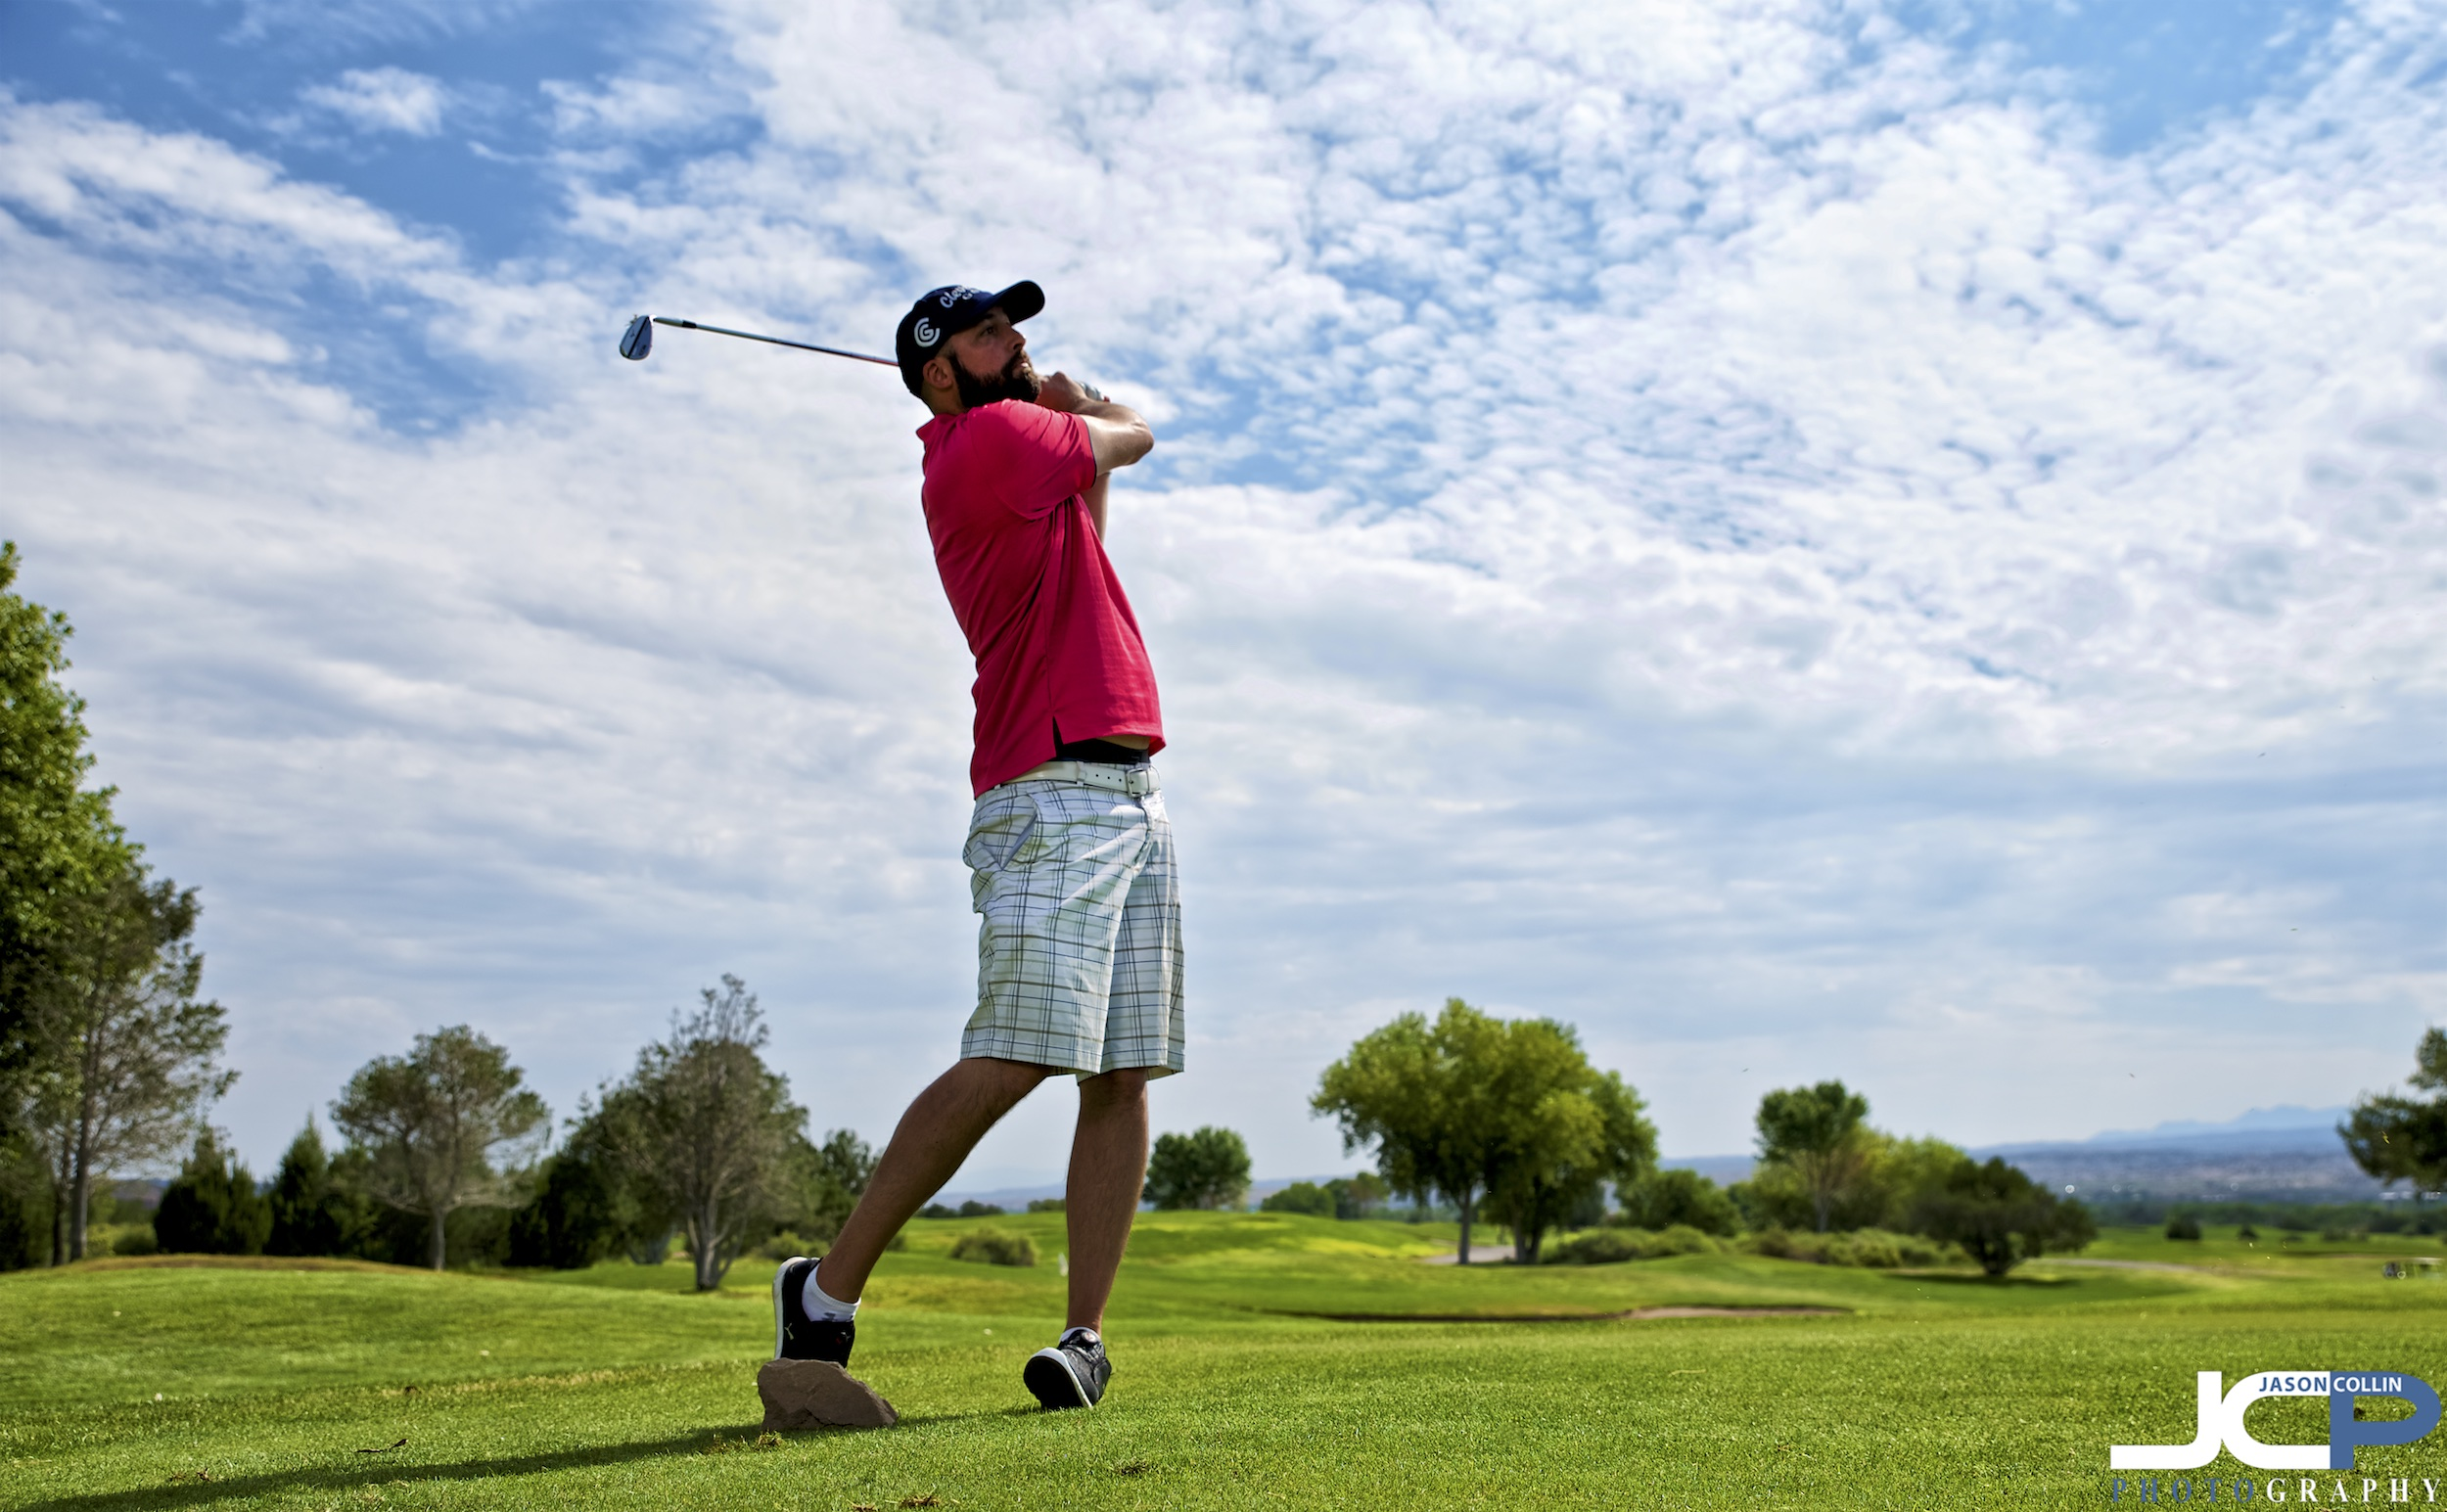 Santa Ana Golf Course hosted this charity event for the Hispano Chamber of Commerce